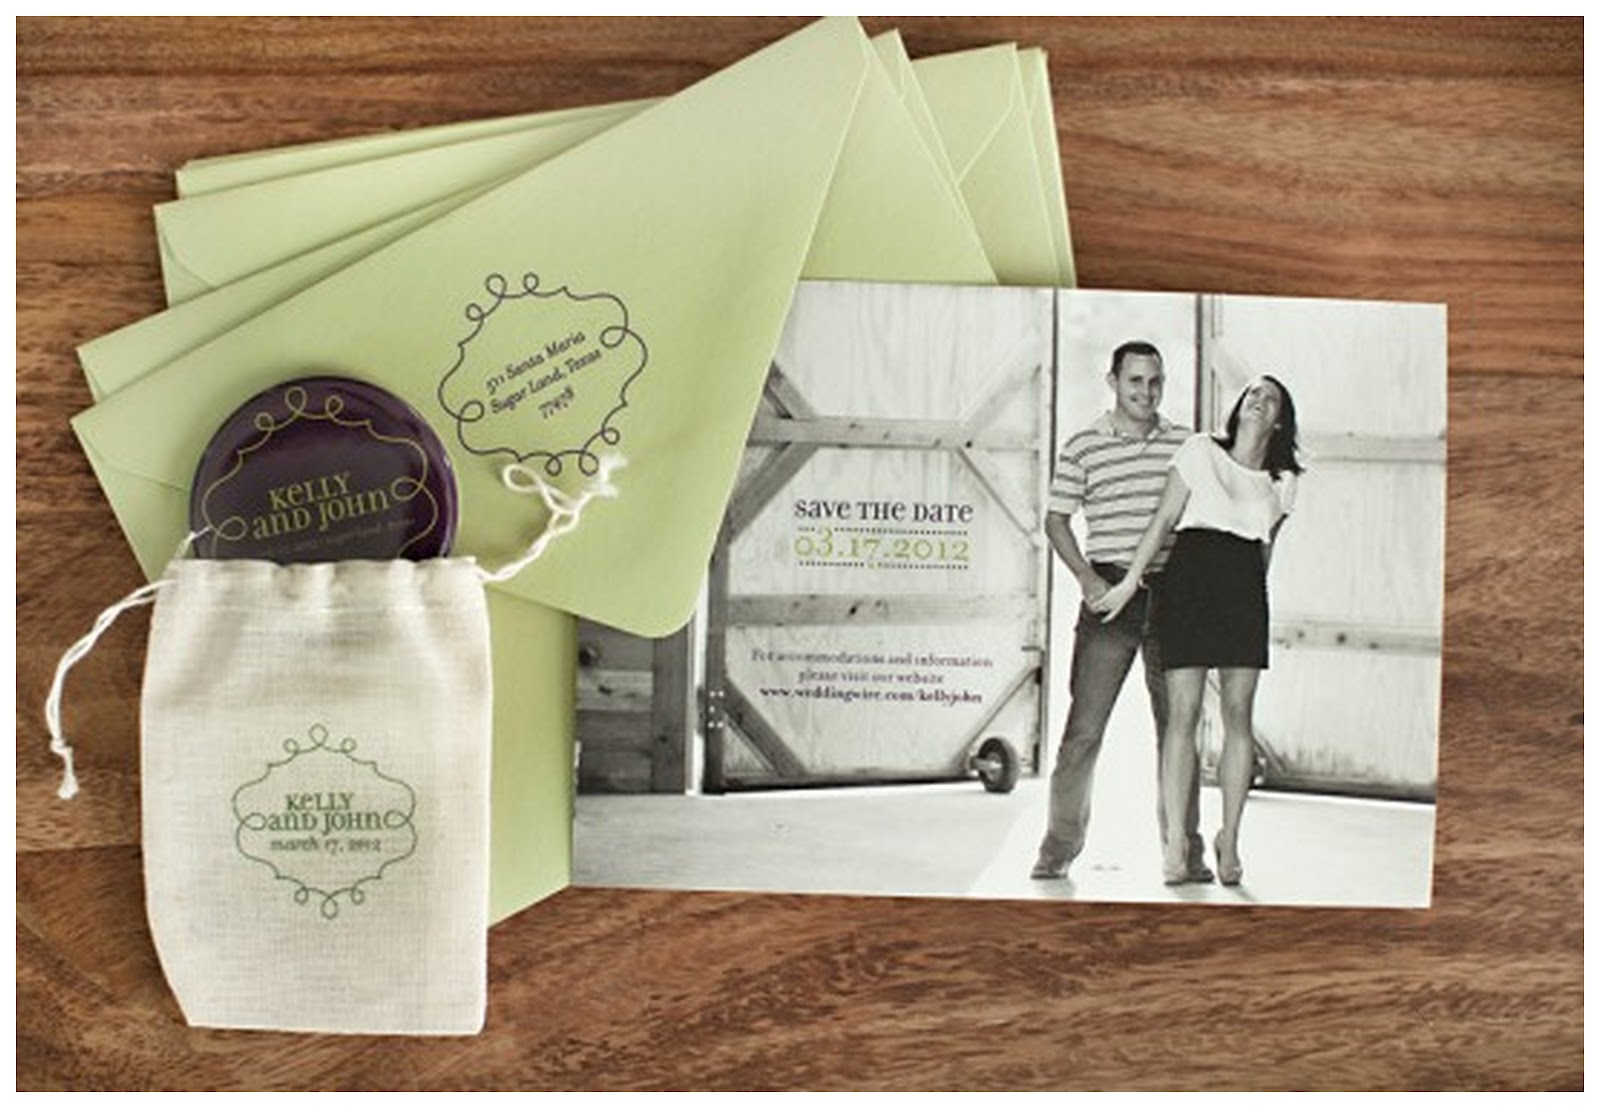 Wedding Invitations And Save The Dates is one of our best ideas you might choose for invitation design